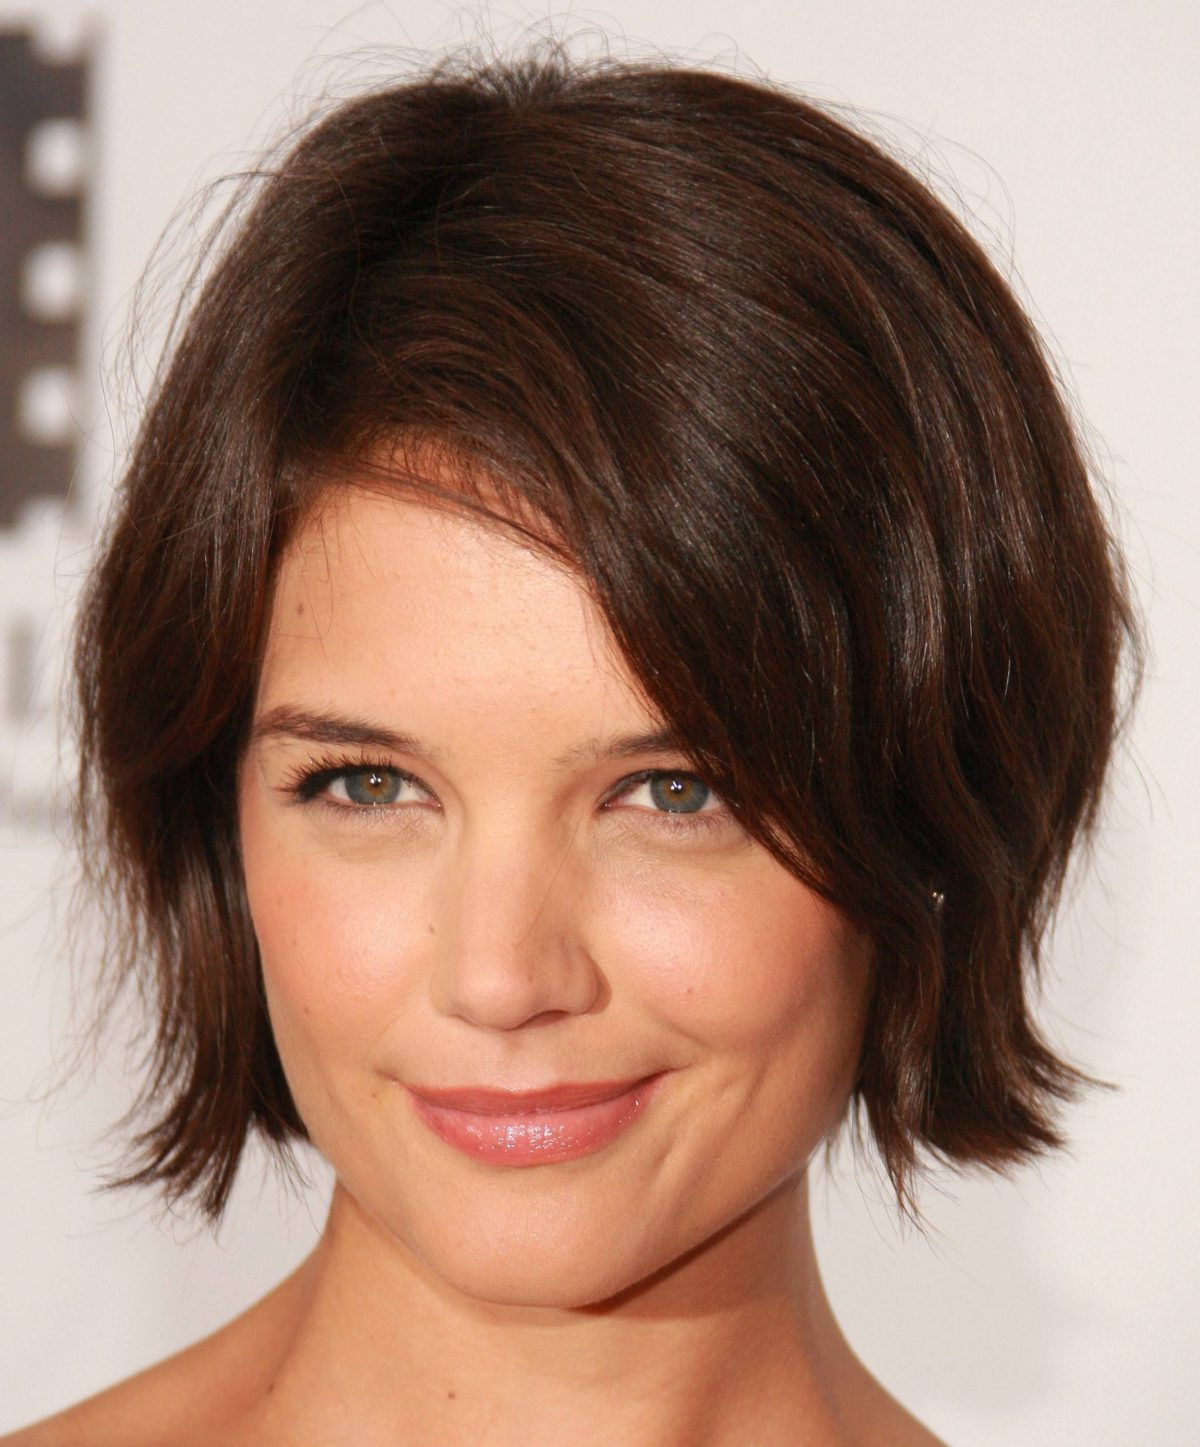 Best Short Hairstyles – Cute Hair Cut Guide For Round Face Shape With Regard To Short Hairstyles For Women With Round Face (View 8 of 25)